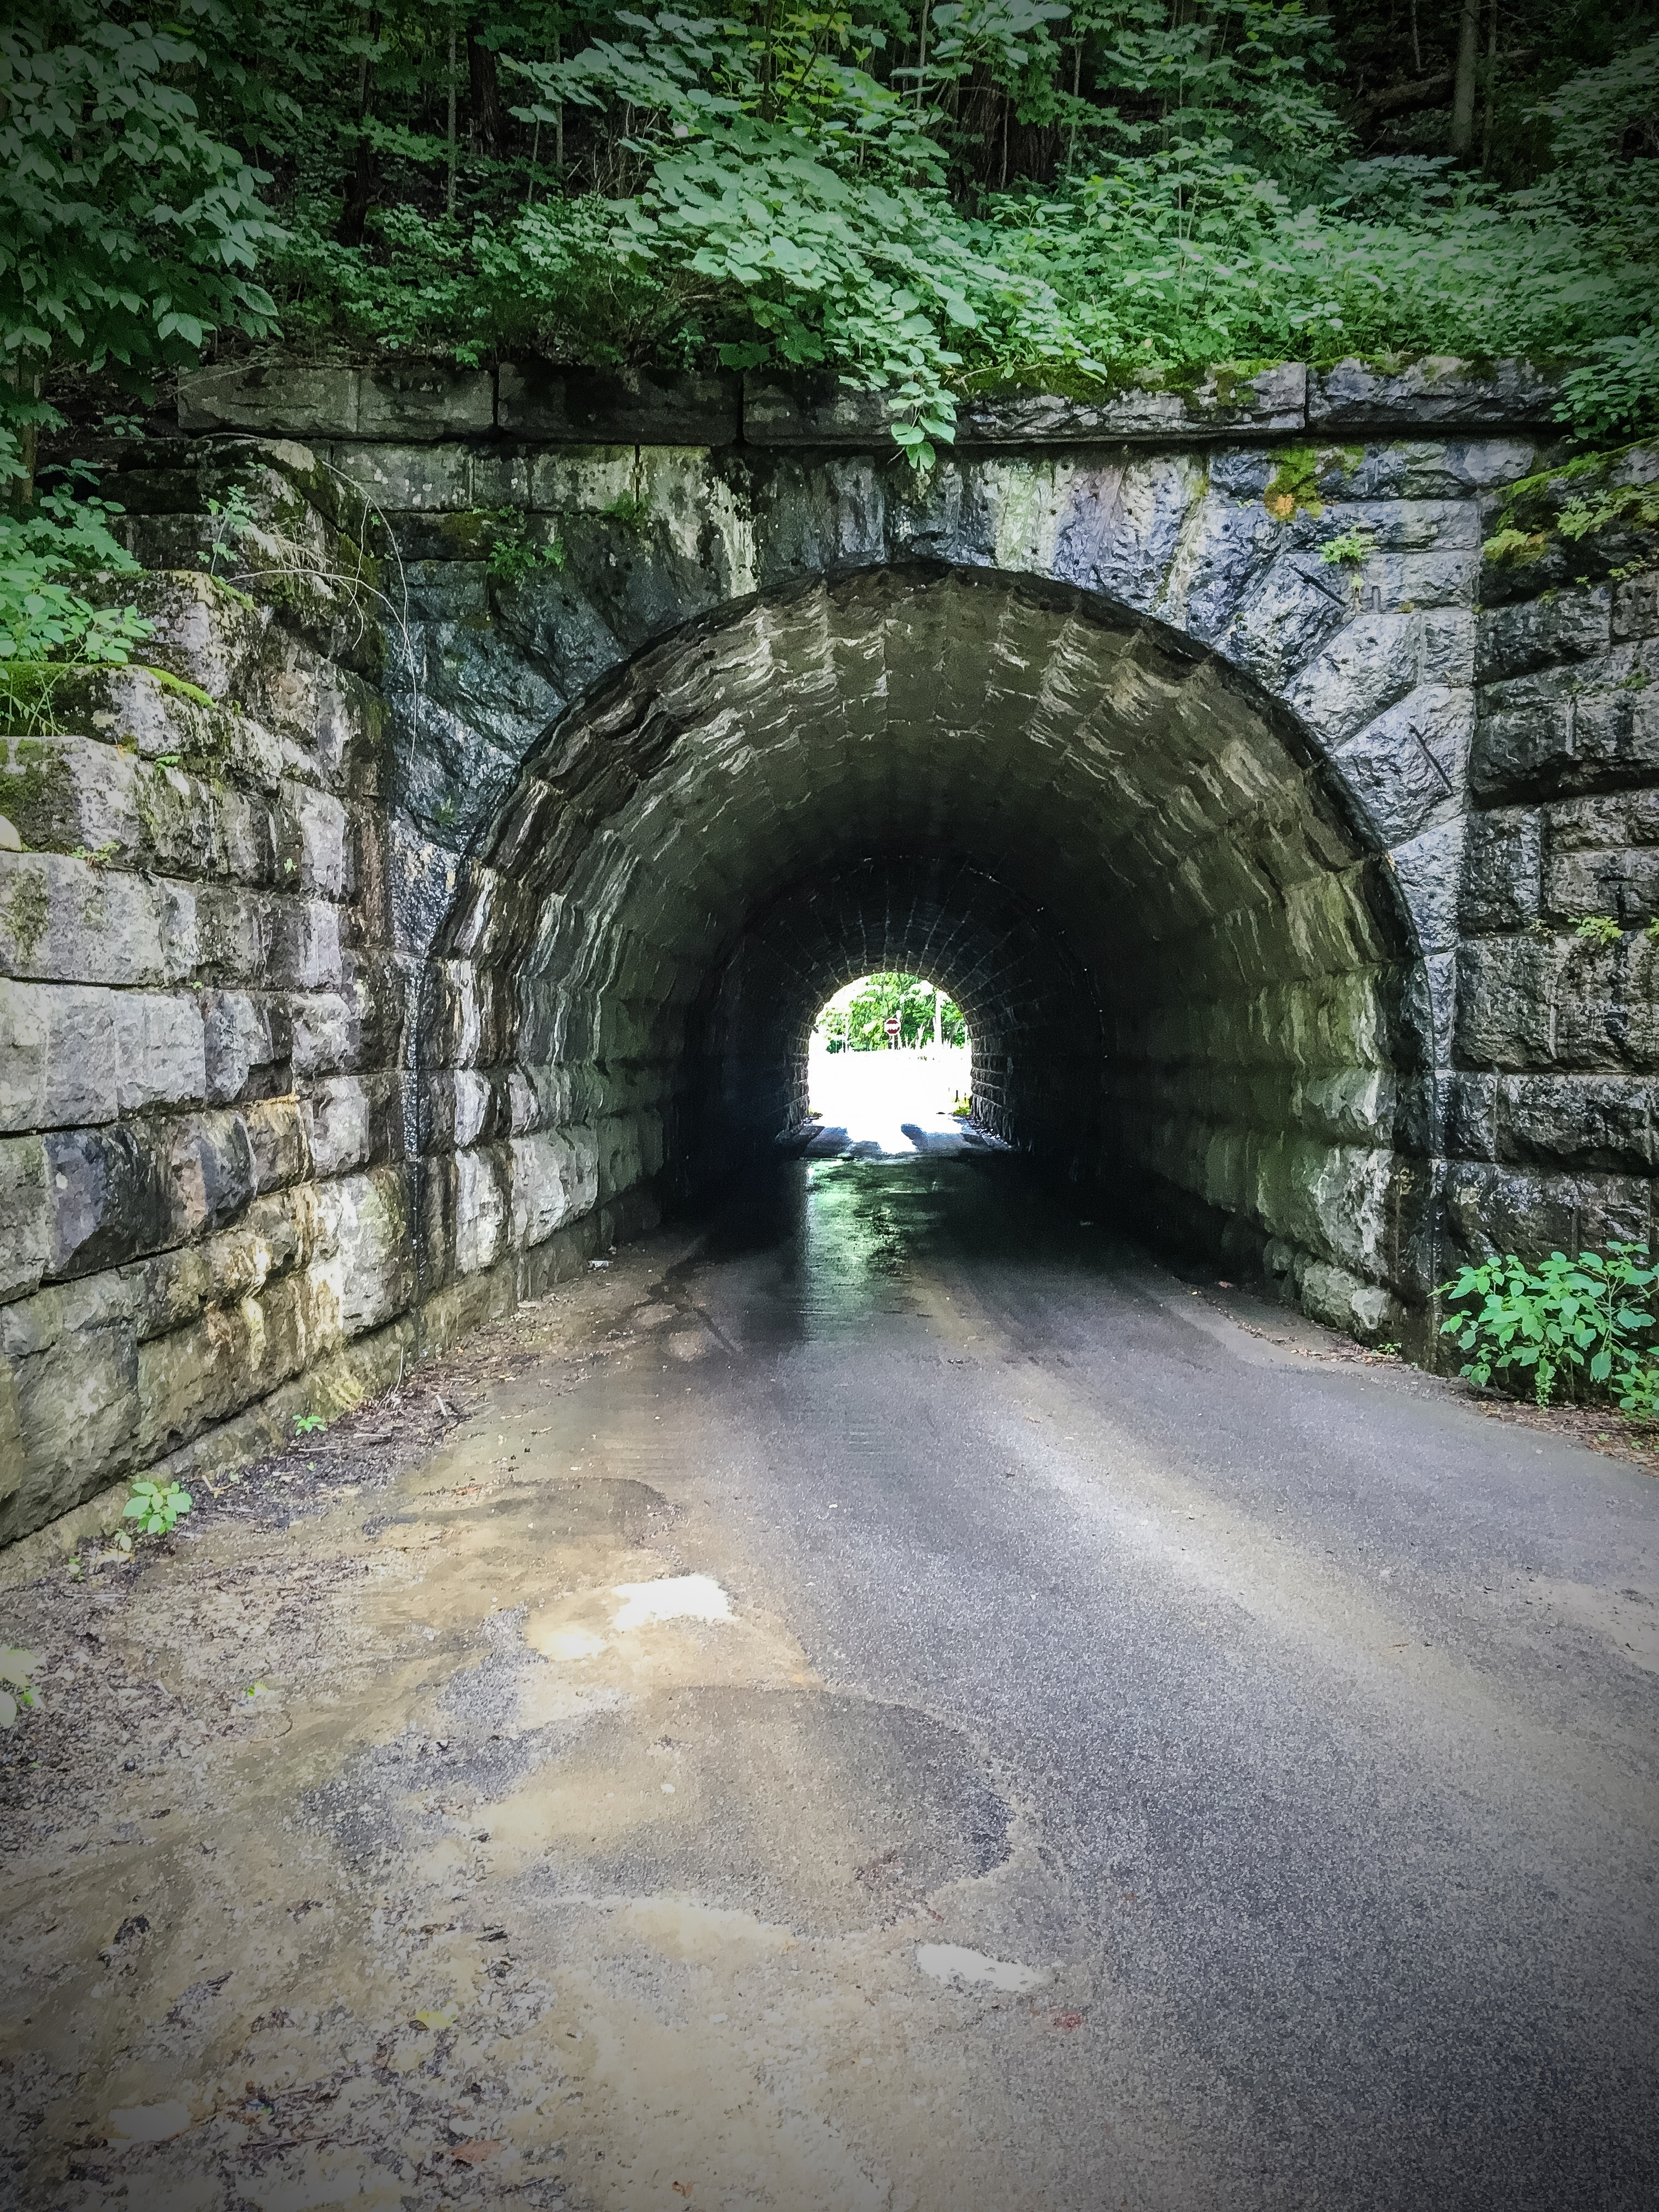 The entrance to Frosty Acres Campground outside Schenectady.